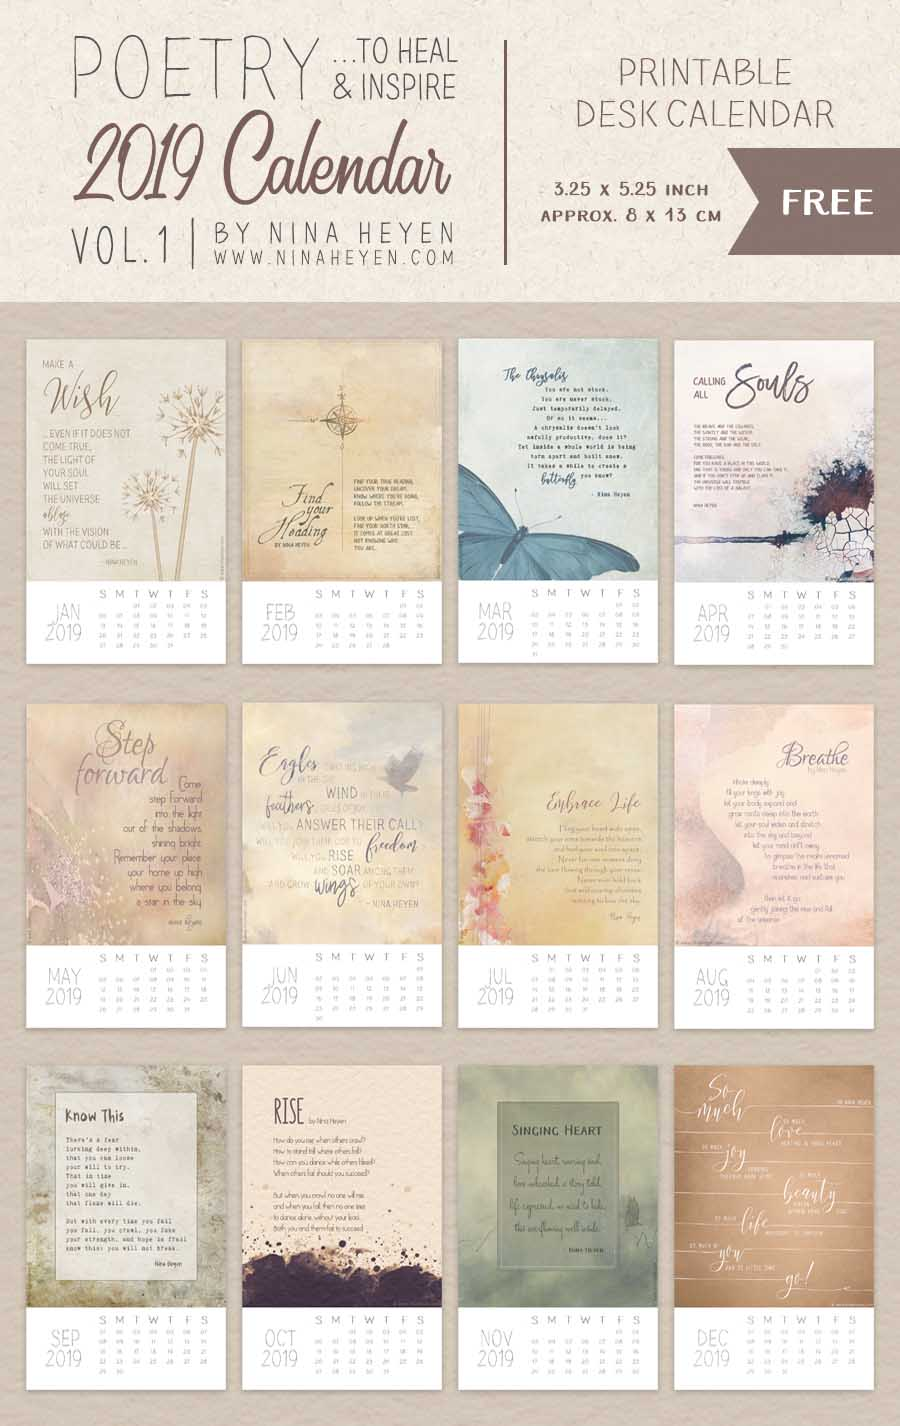 2019 Inspirational Poetry Calendar Vol 1